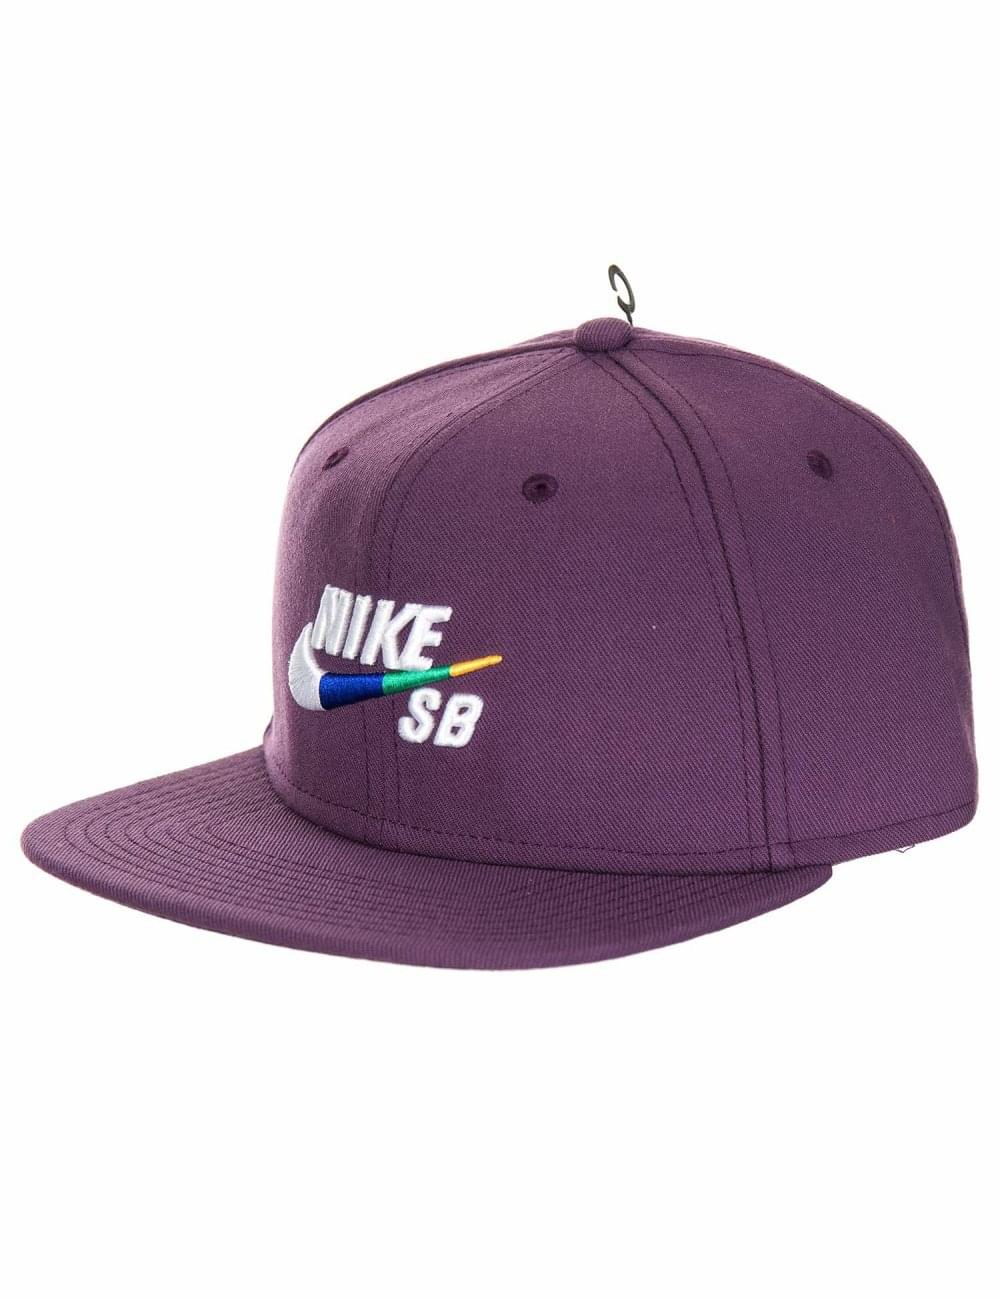 672a098ef92eeb where can i buy nike snapback caps purple ball cap 50a94 18931